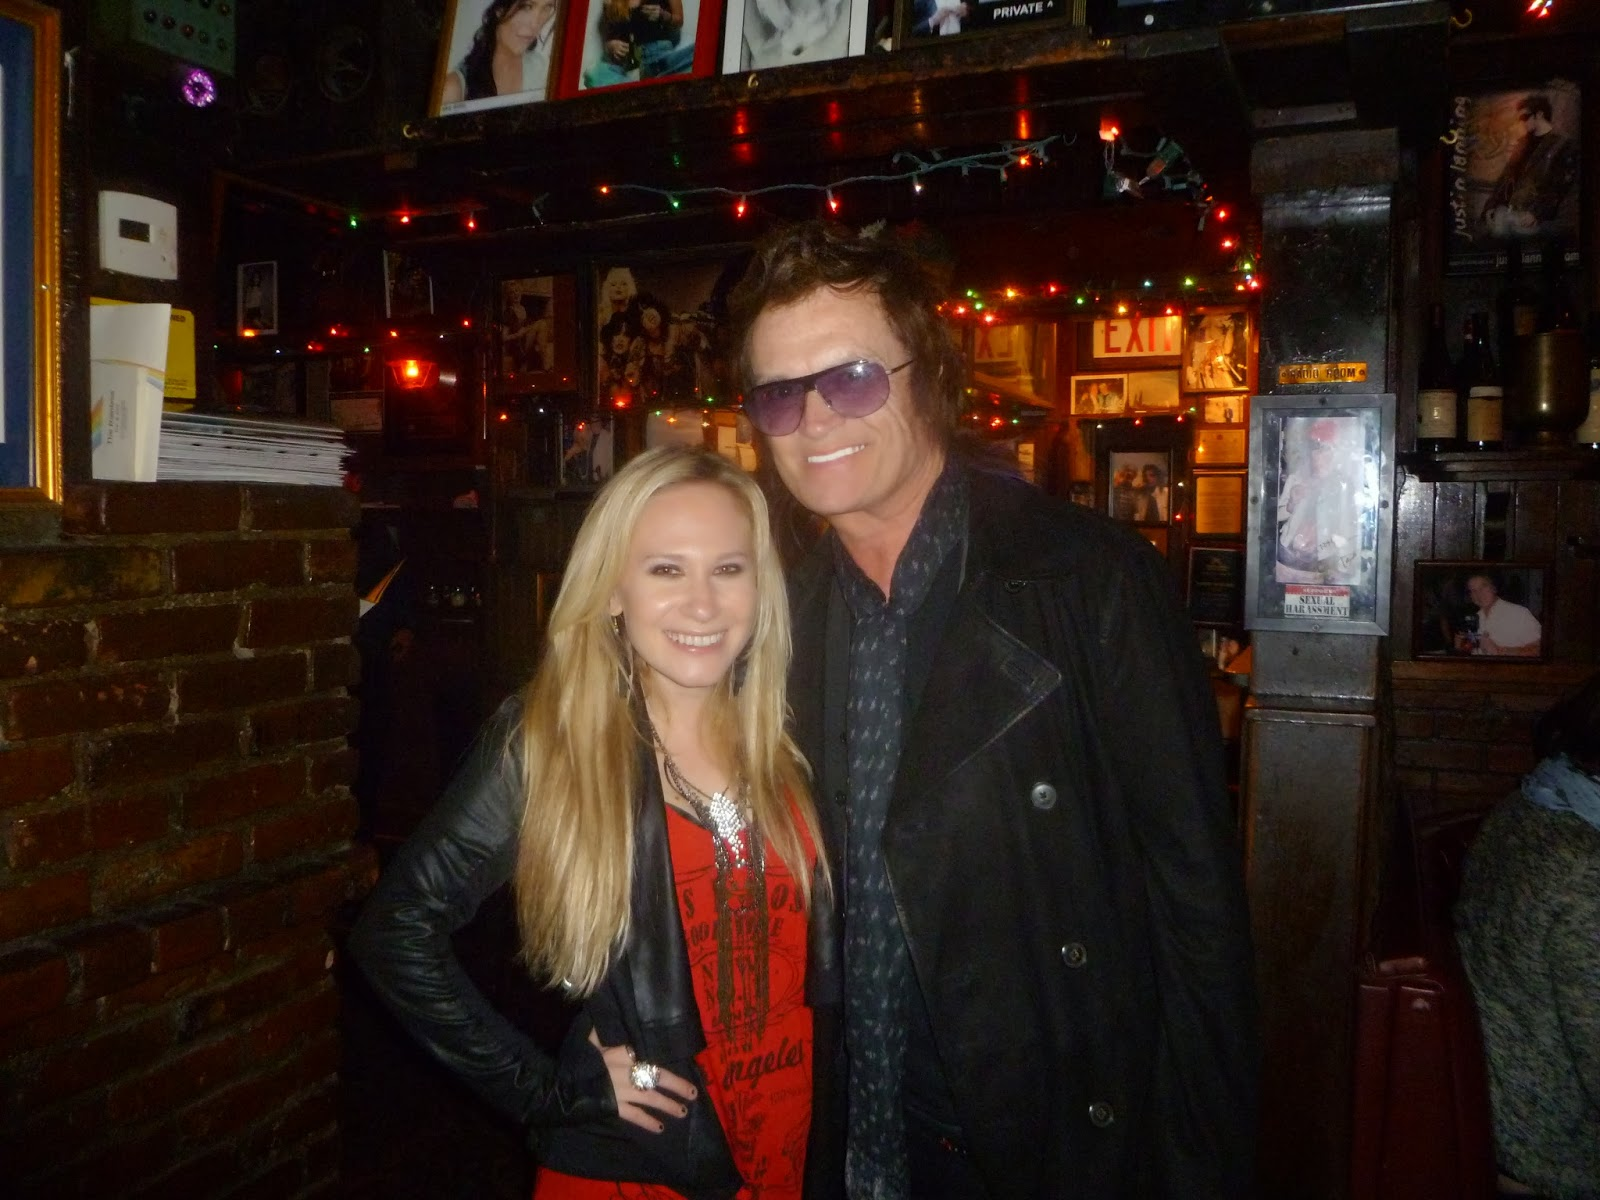 Madysin hatters rock blog the legendary glenn hughes it was so amazing to meet glenn hughes black sabbath deep purple this week at rainbow room and then see him rock out with lita ford at whisky a go go m4hsunfo